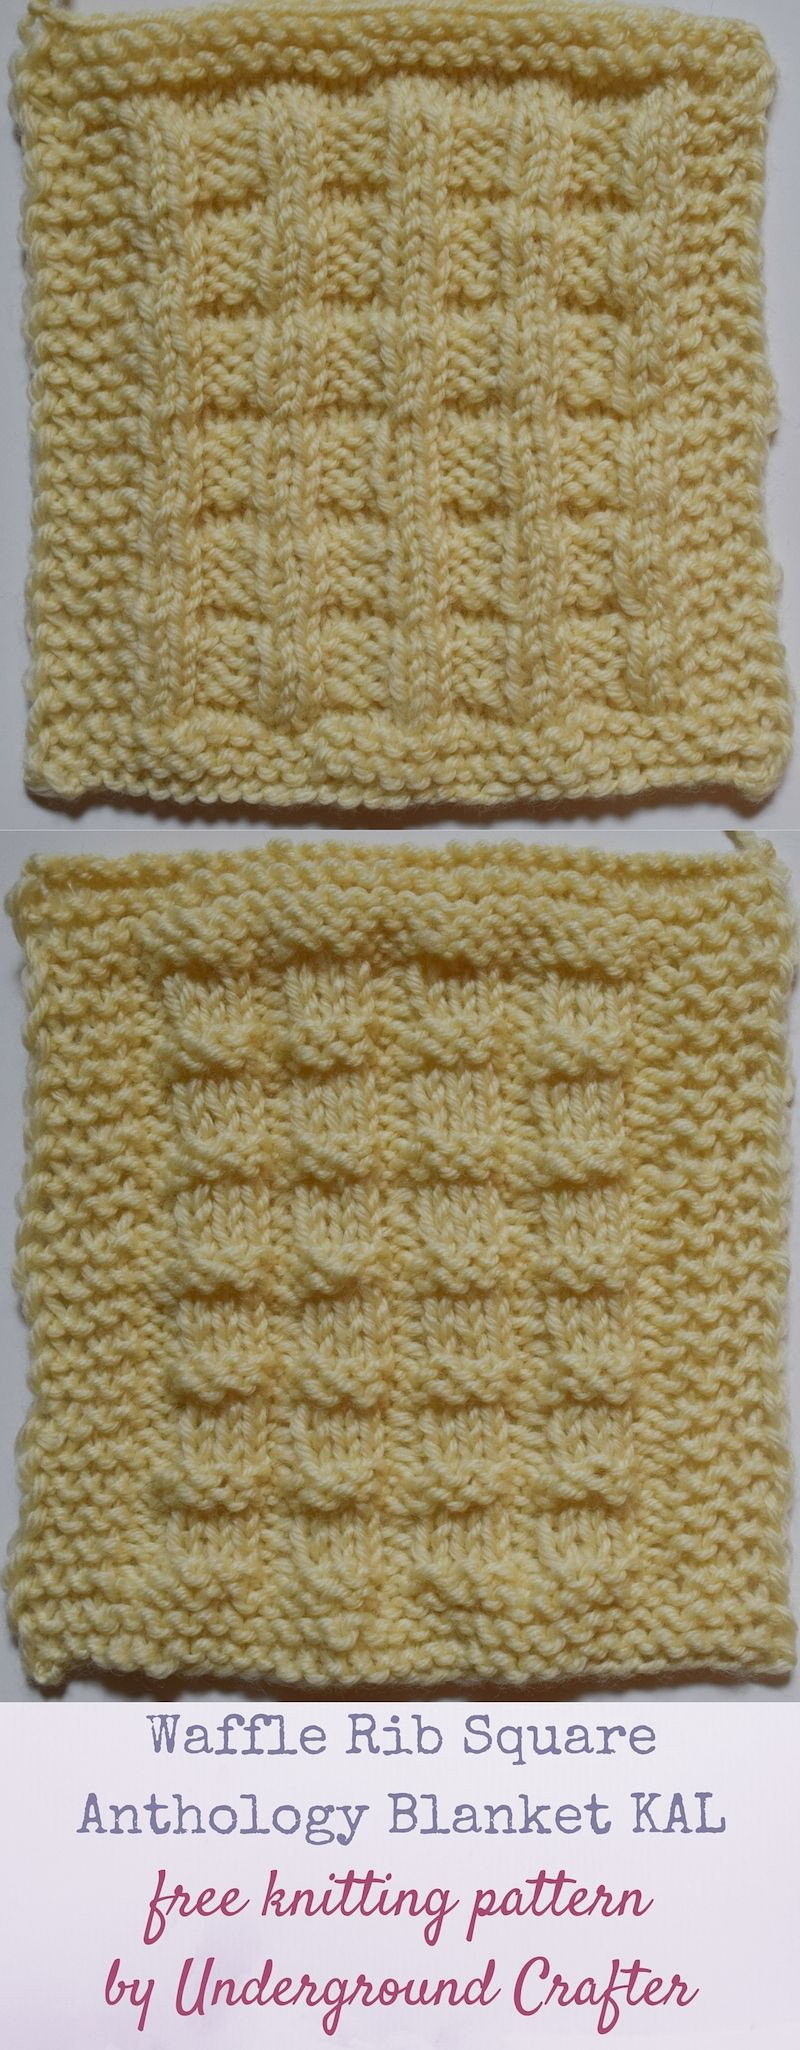 Free Knitted Dishcloth Patterns Knitting Central - Knitting ...